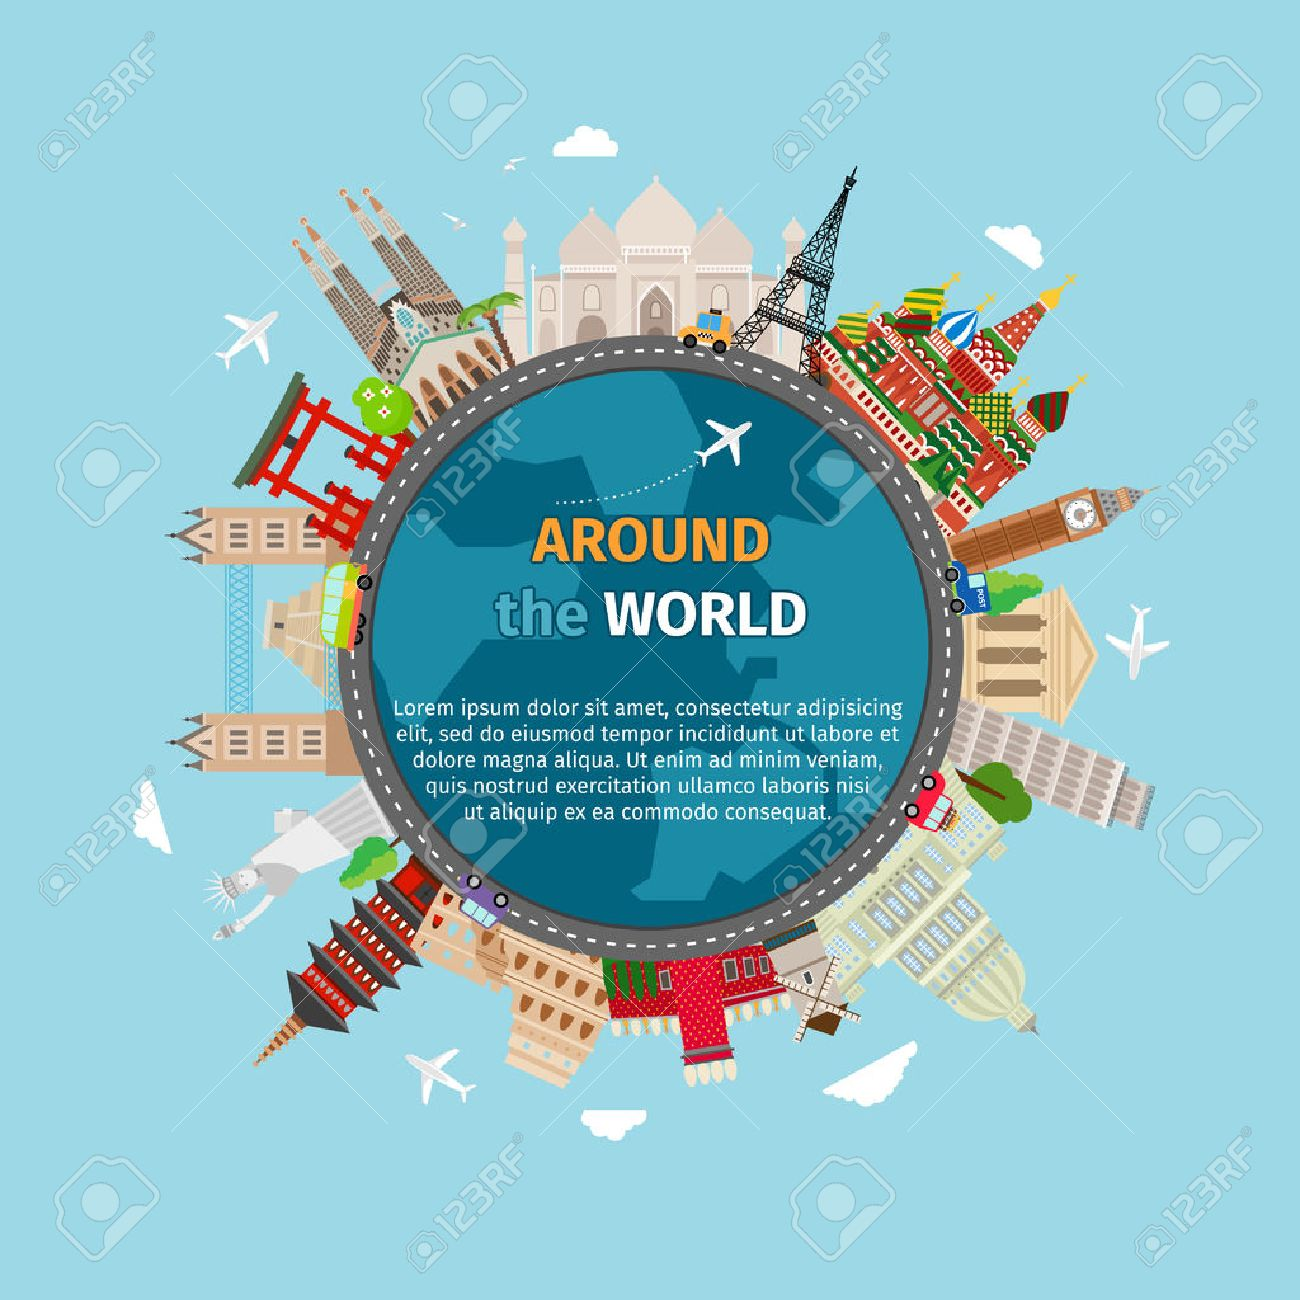 Travel around the world postcard. Tourism and vacation, earth world, journey global, vector illustration - 42795154